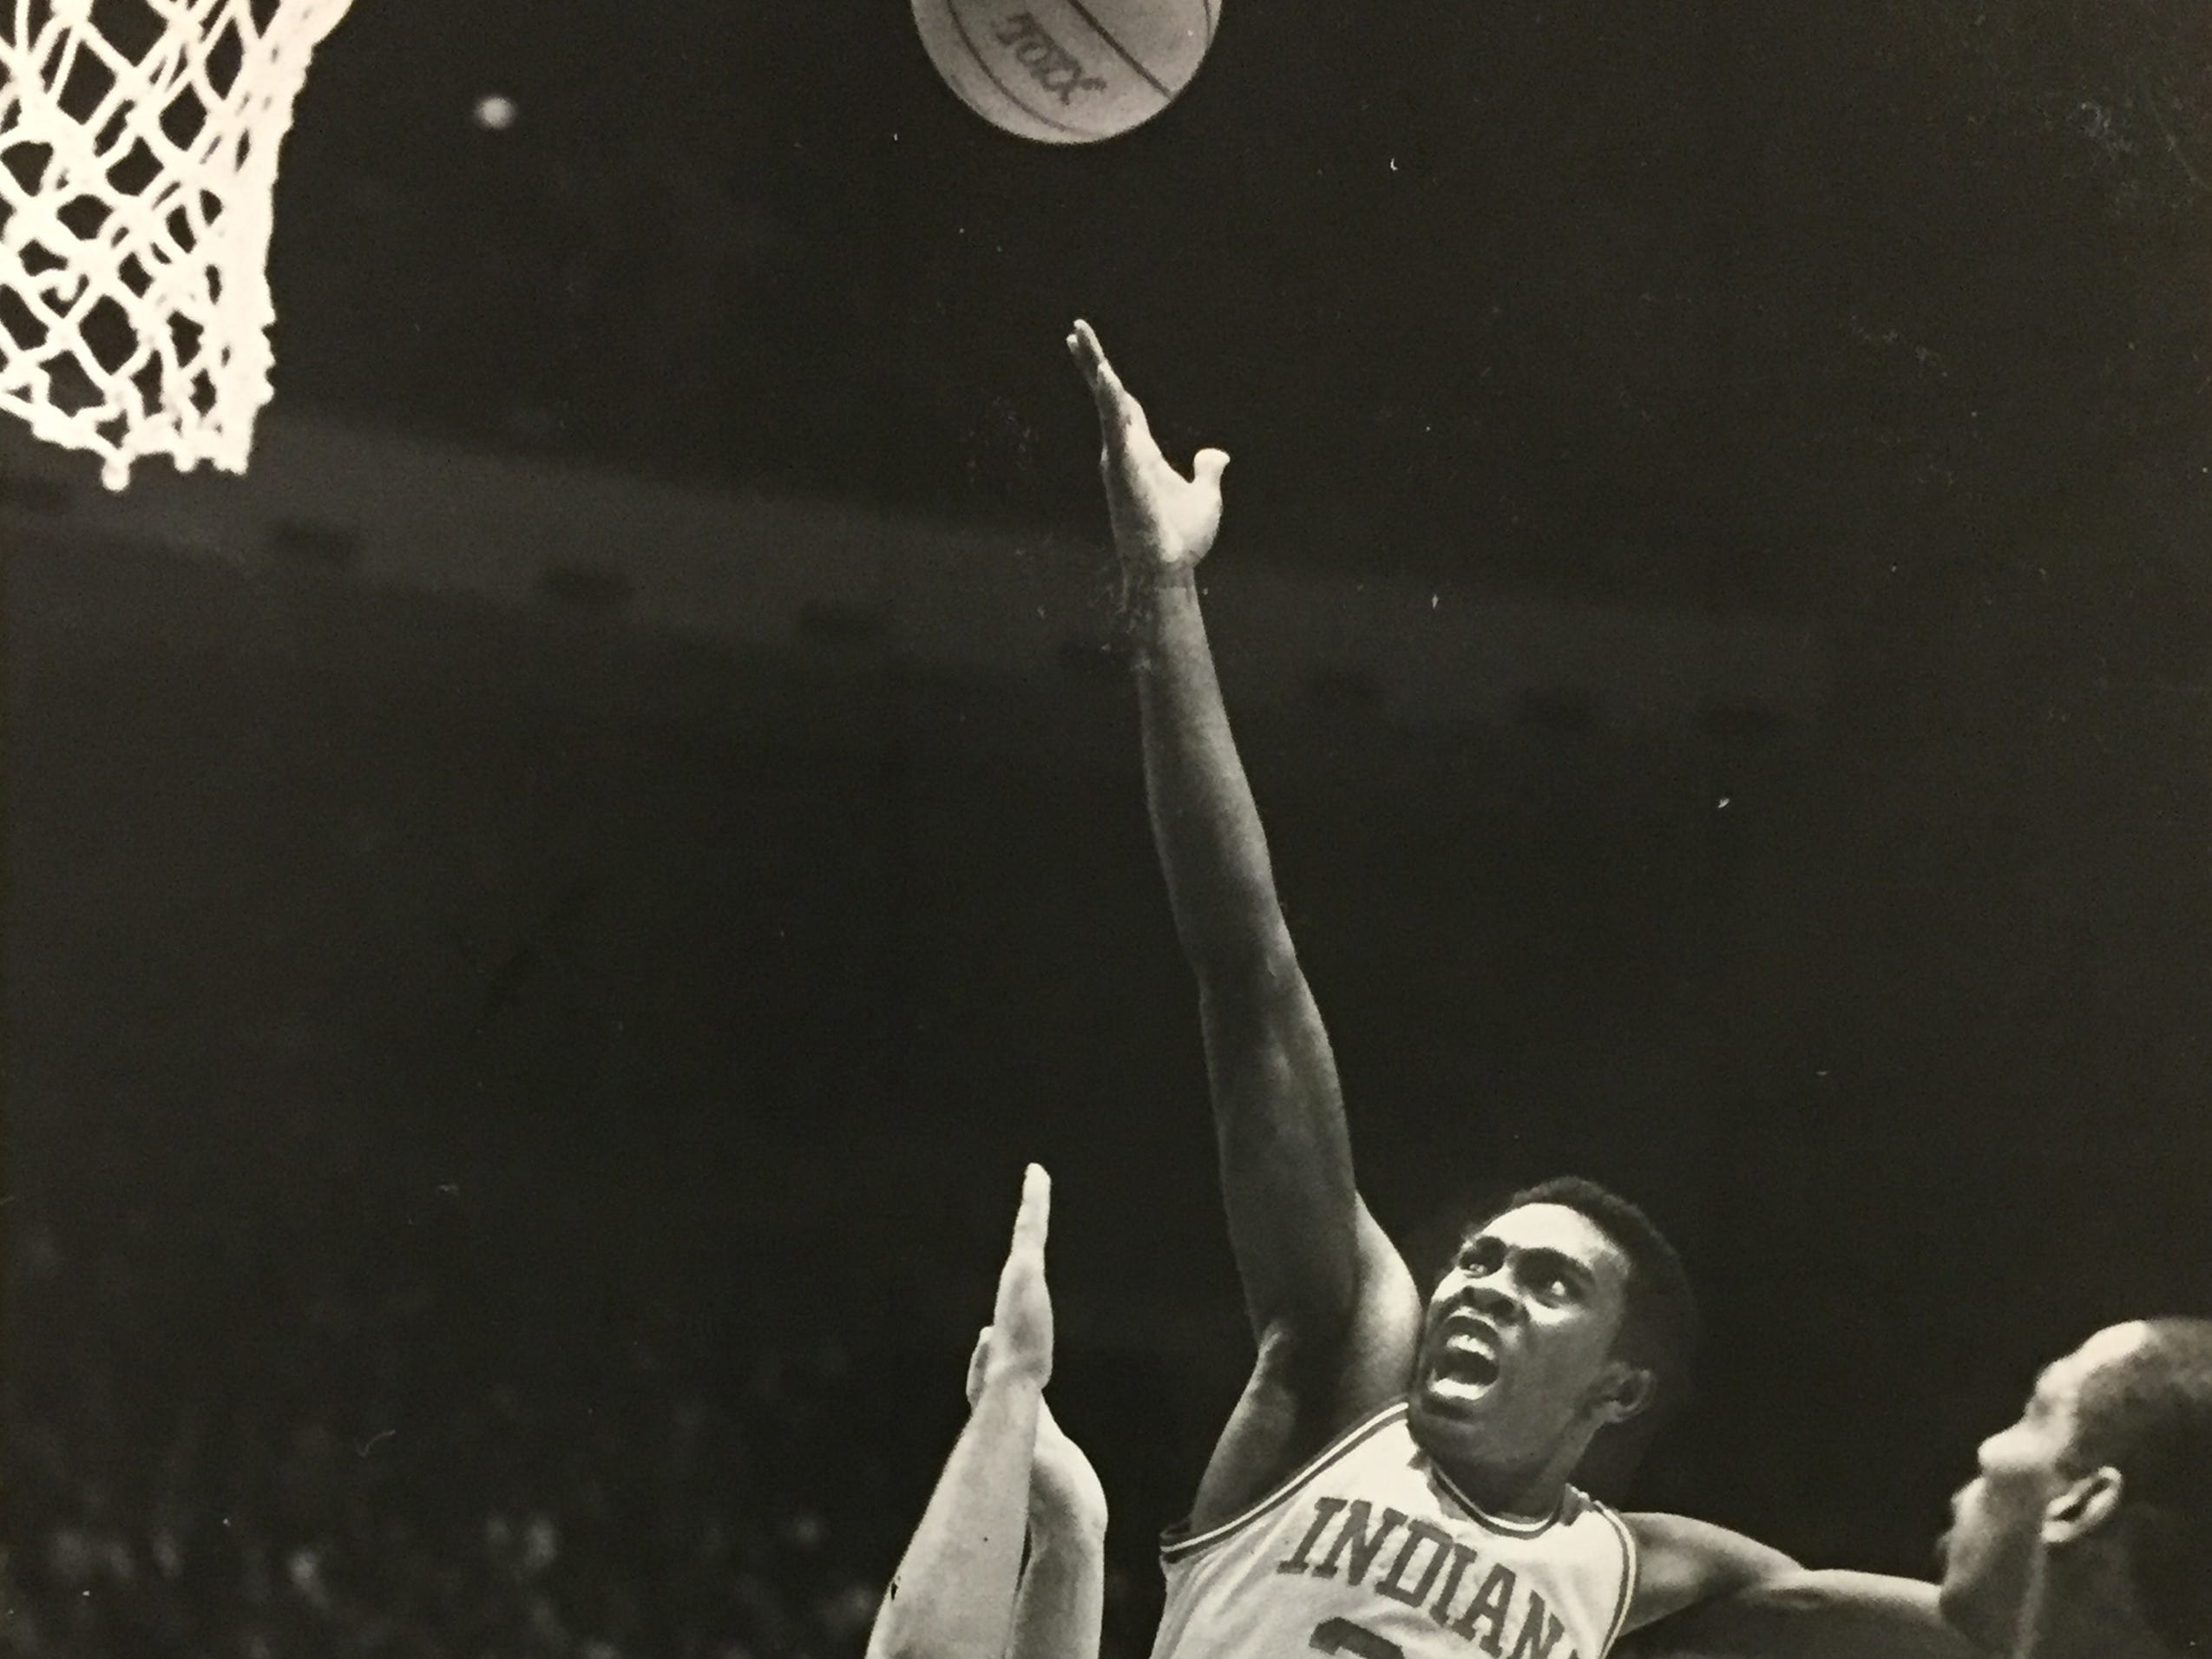 Jim Thomas puts up a shot against Ohio State on March 12, 1983.